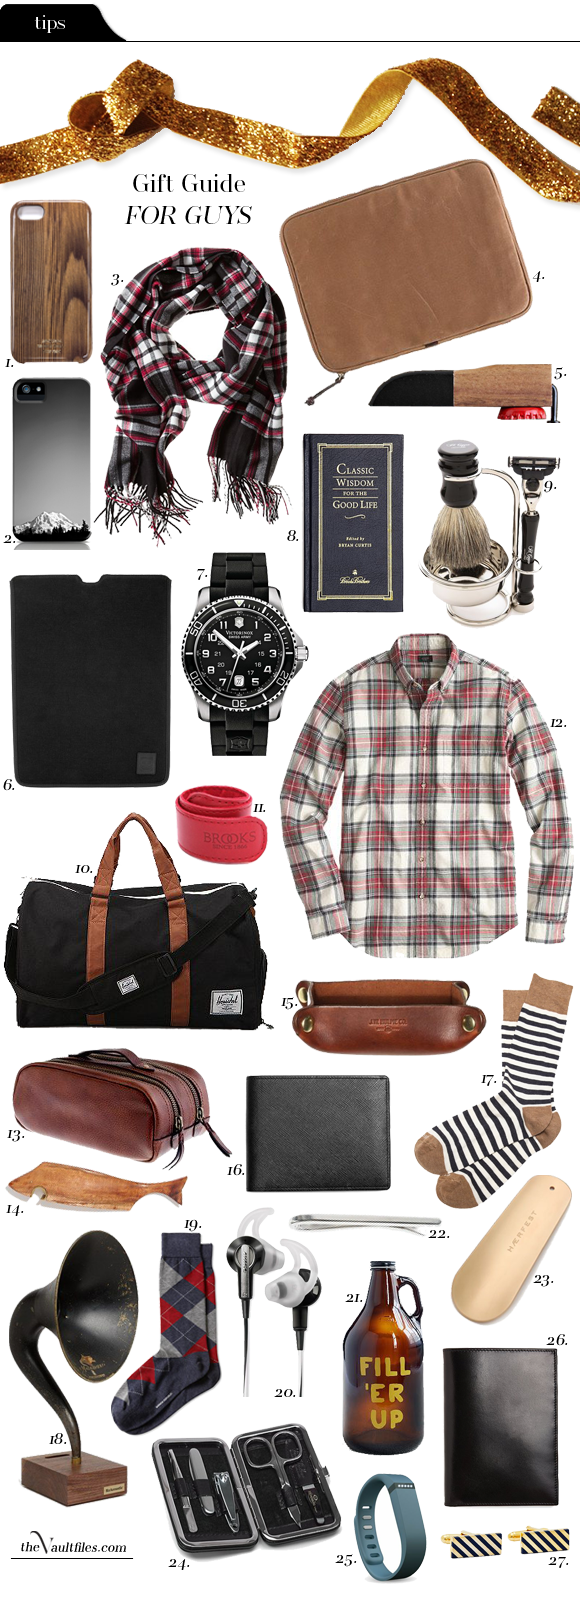 Tips File: Holiday Gift Guide - For the Guys | THE VAULT FILES